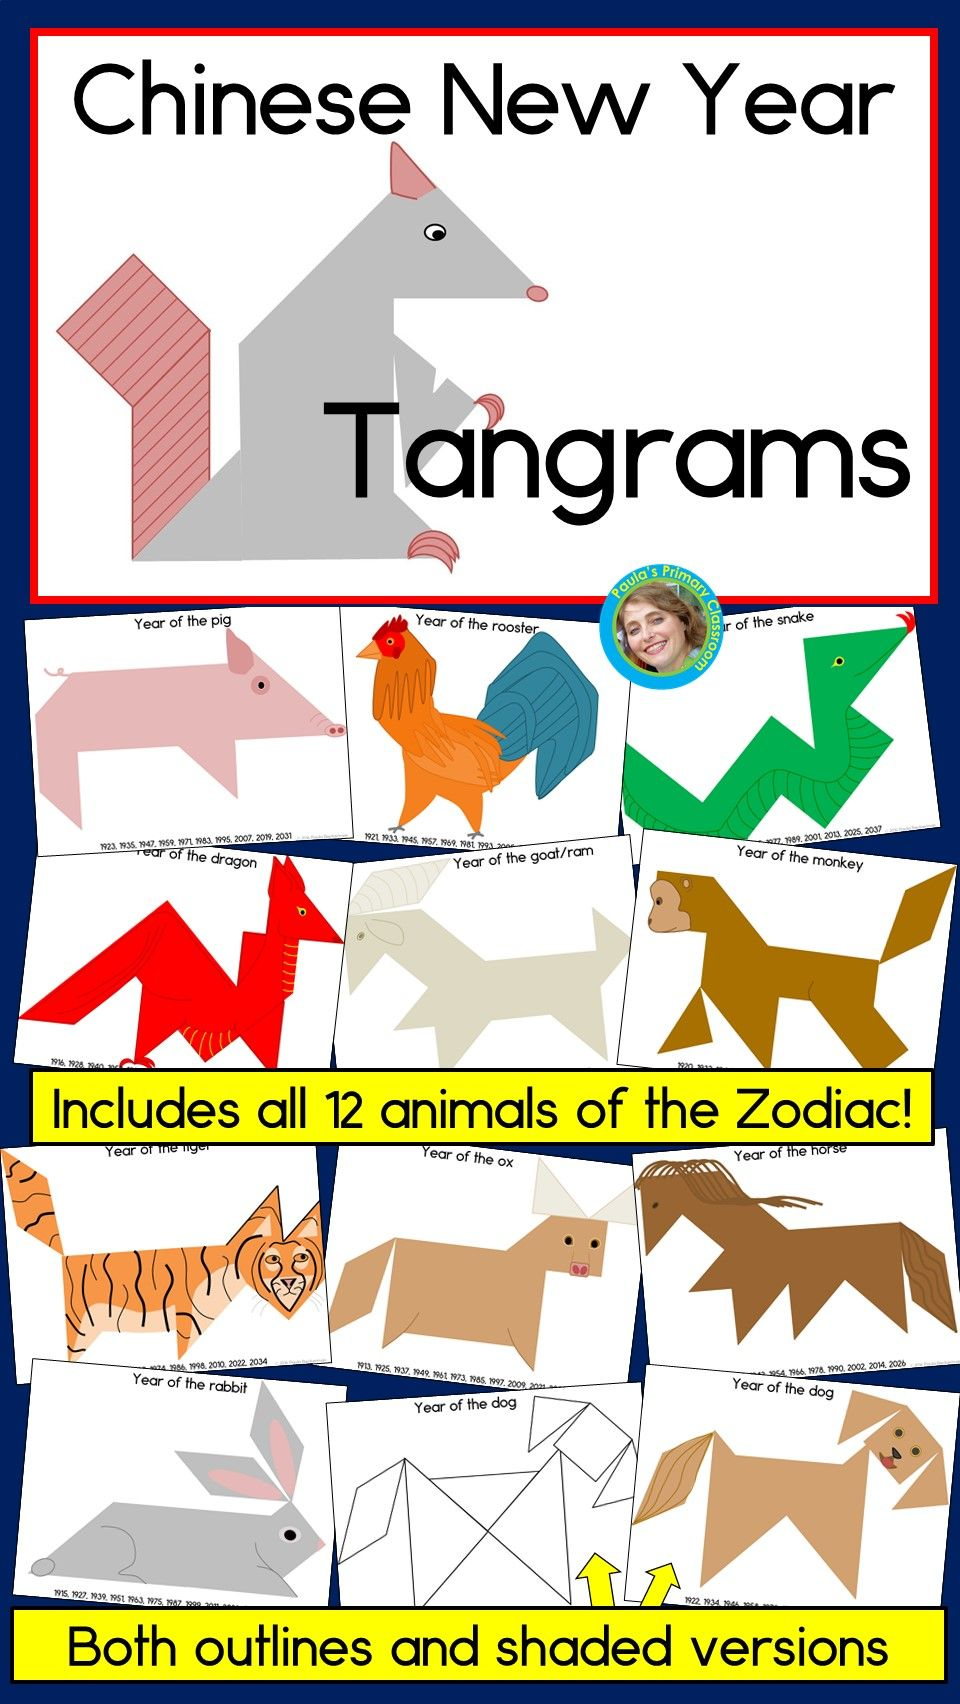 Chinese New Year 2020 Tangram puzzles 2D shapes center